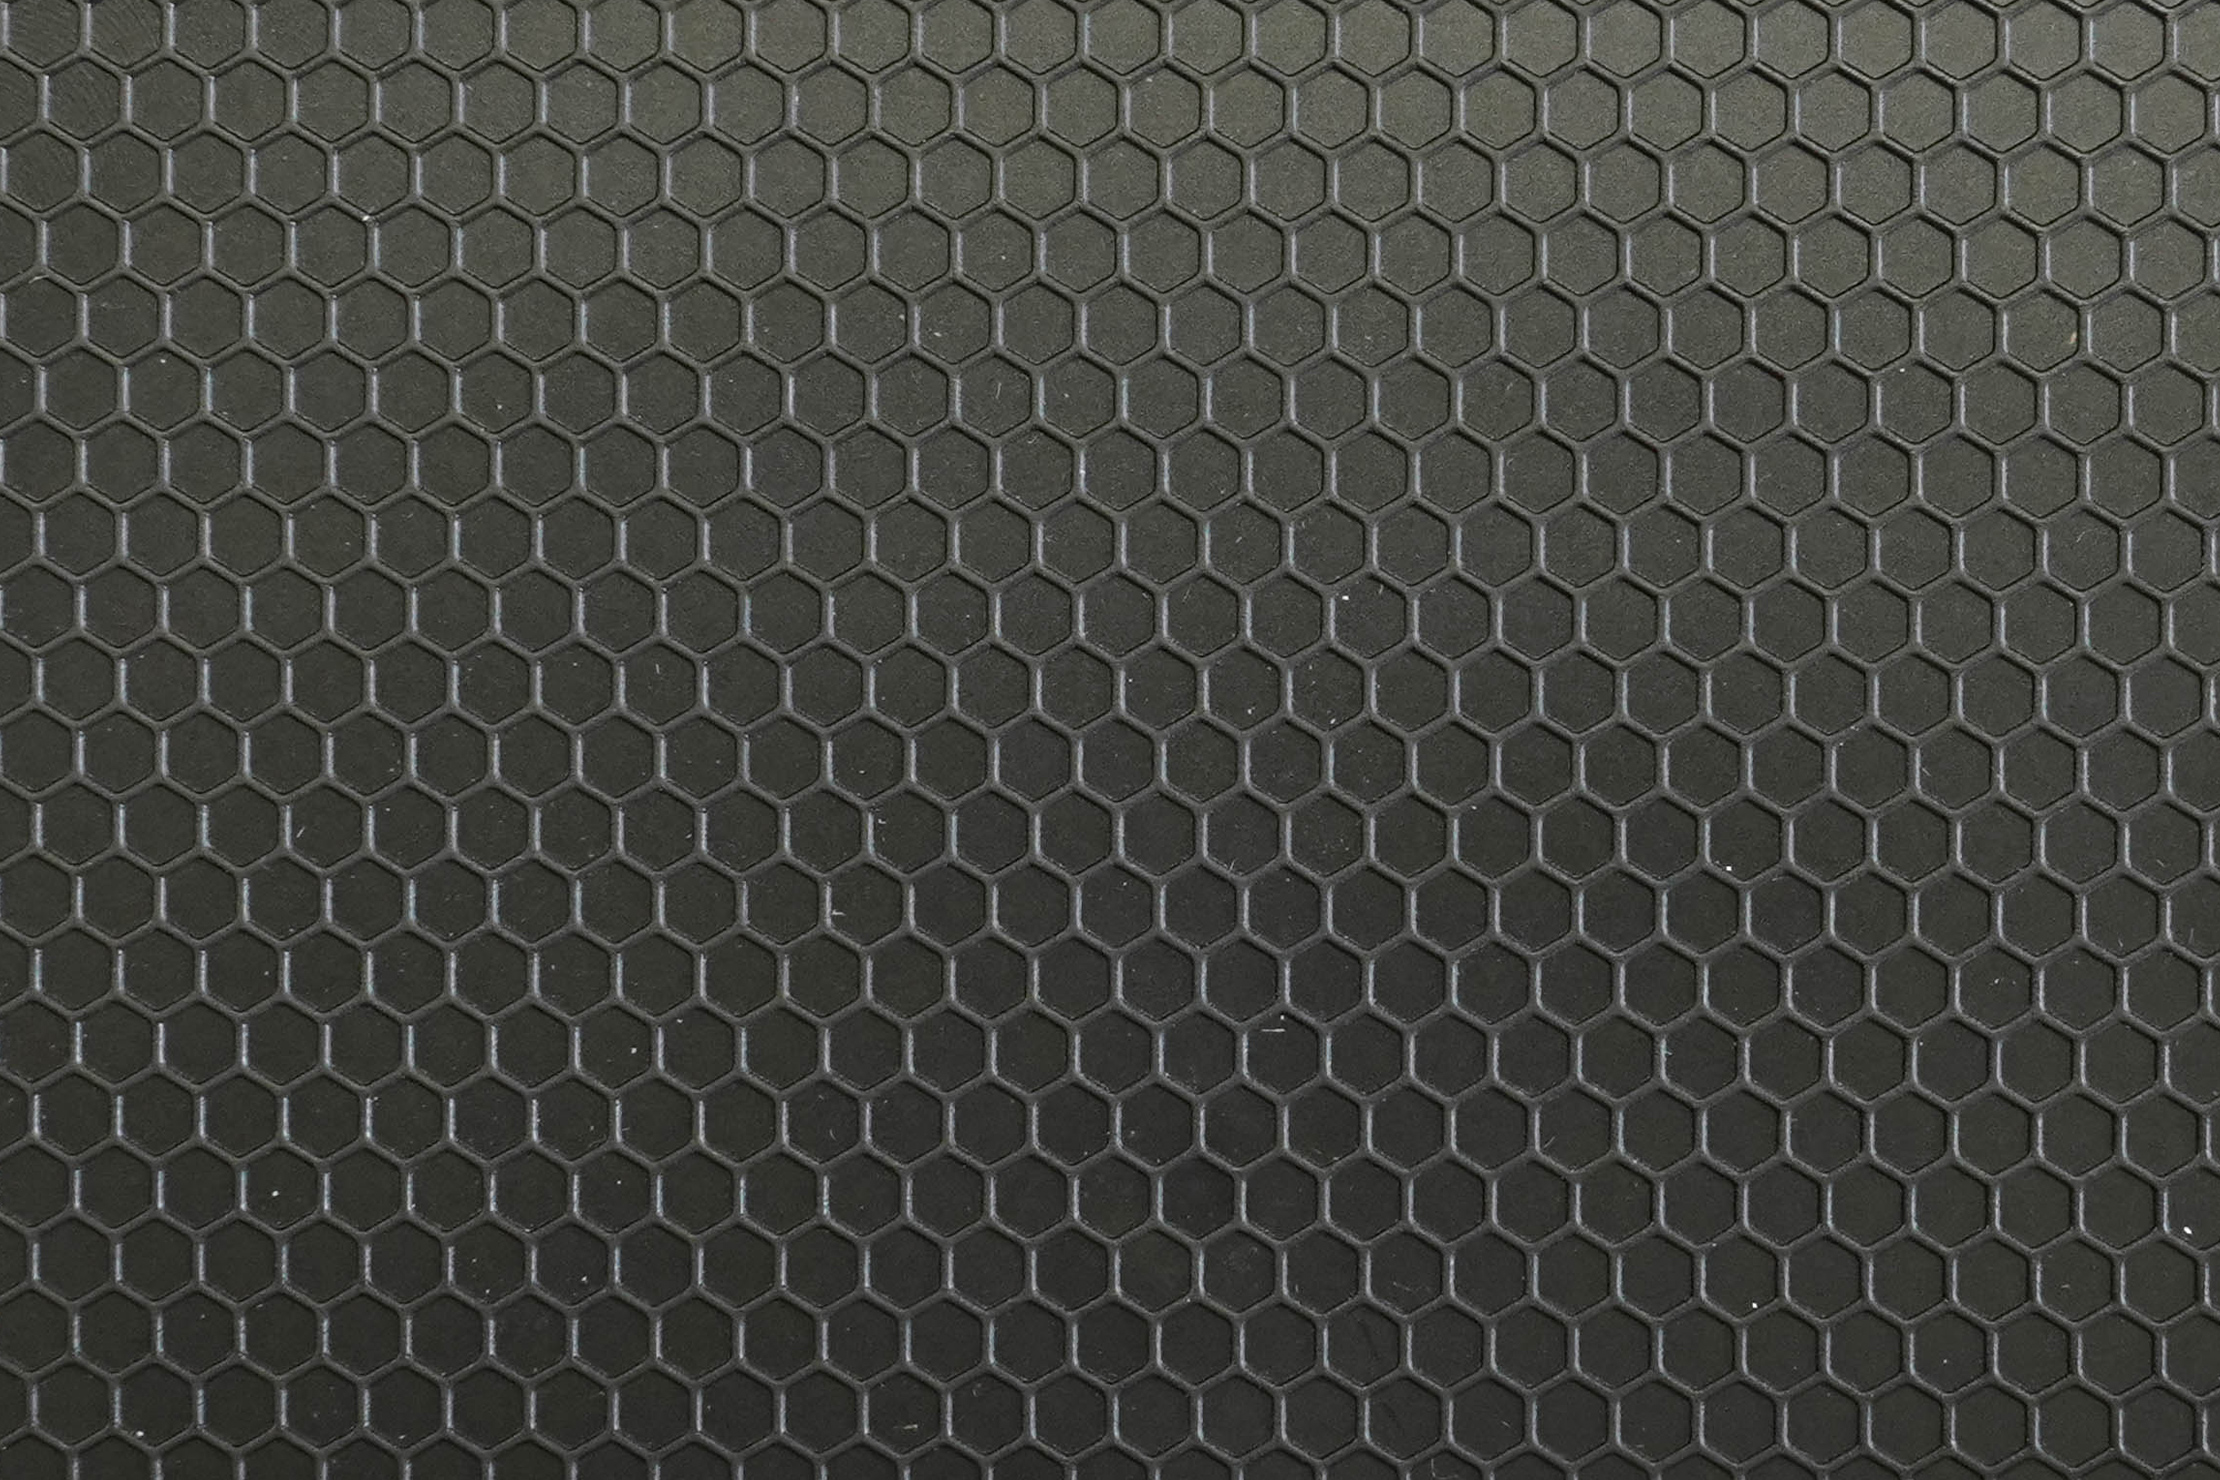 RhinoShield SolidSuit Case Material